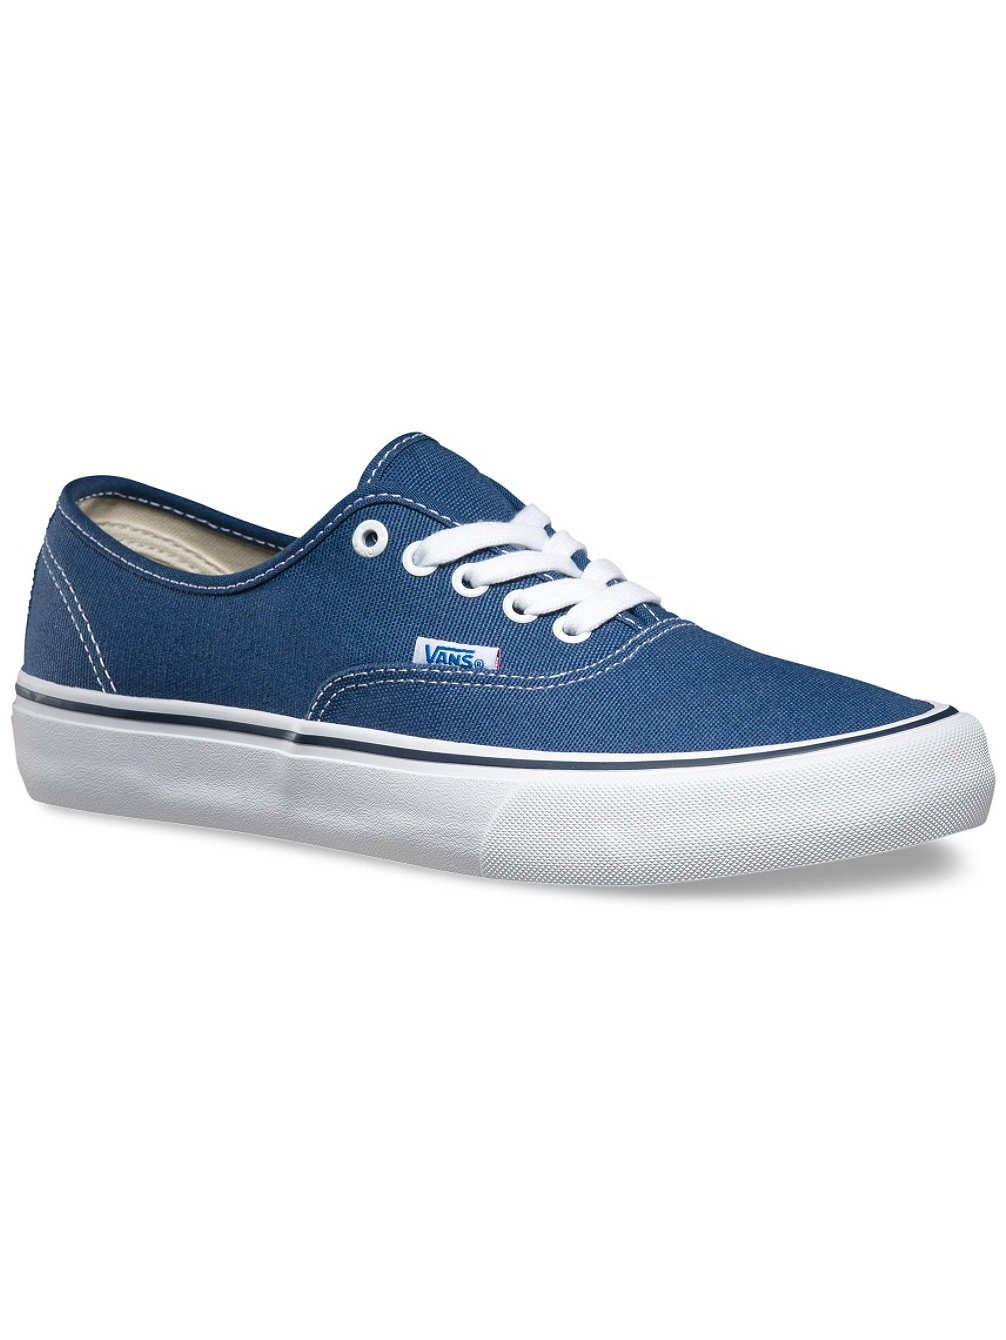 Vans Herren Skateschuh Authentic Pro Skate Shoes: